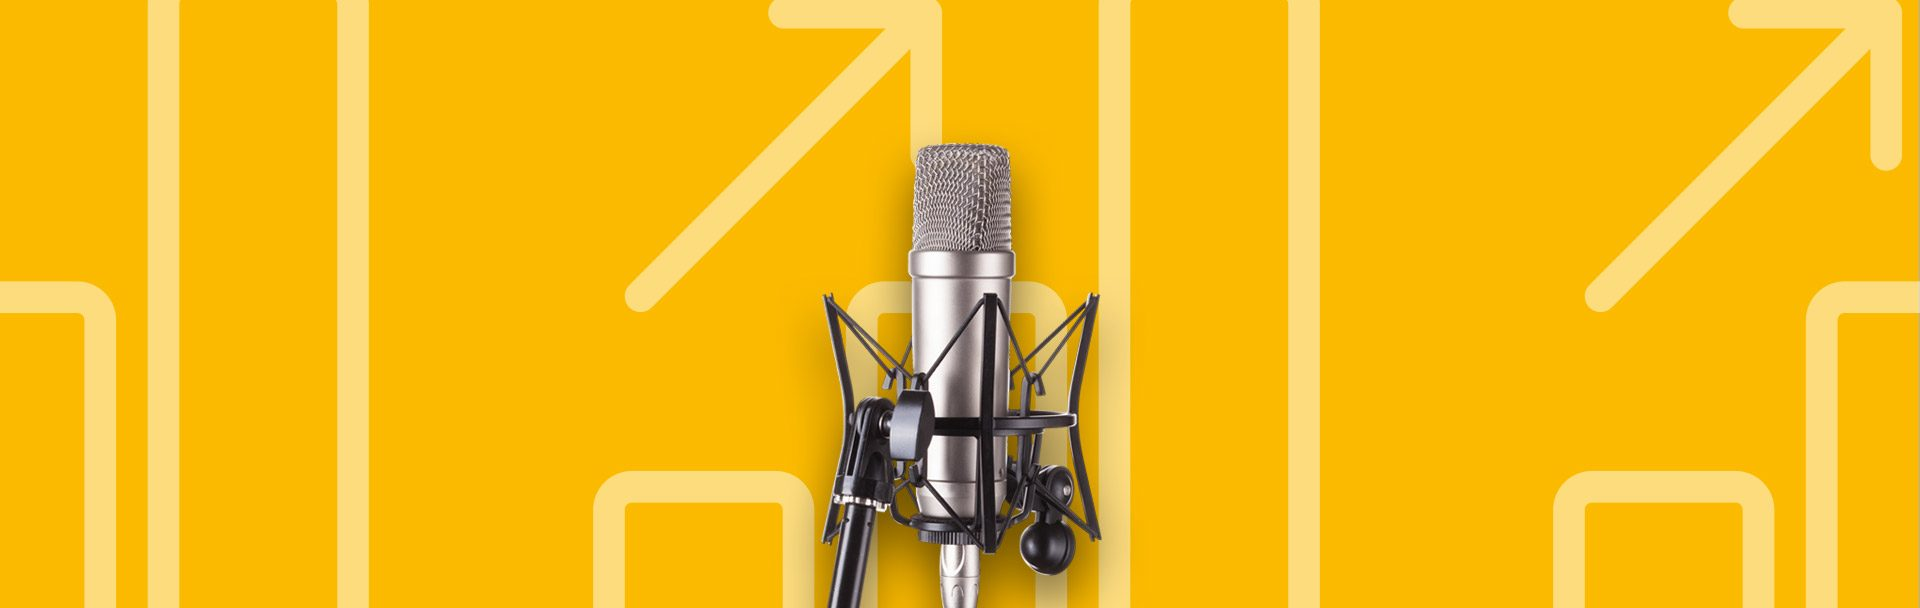 Podcast: Op weg naar de data driven boardroom - Hot ITem